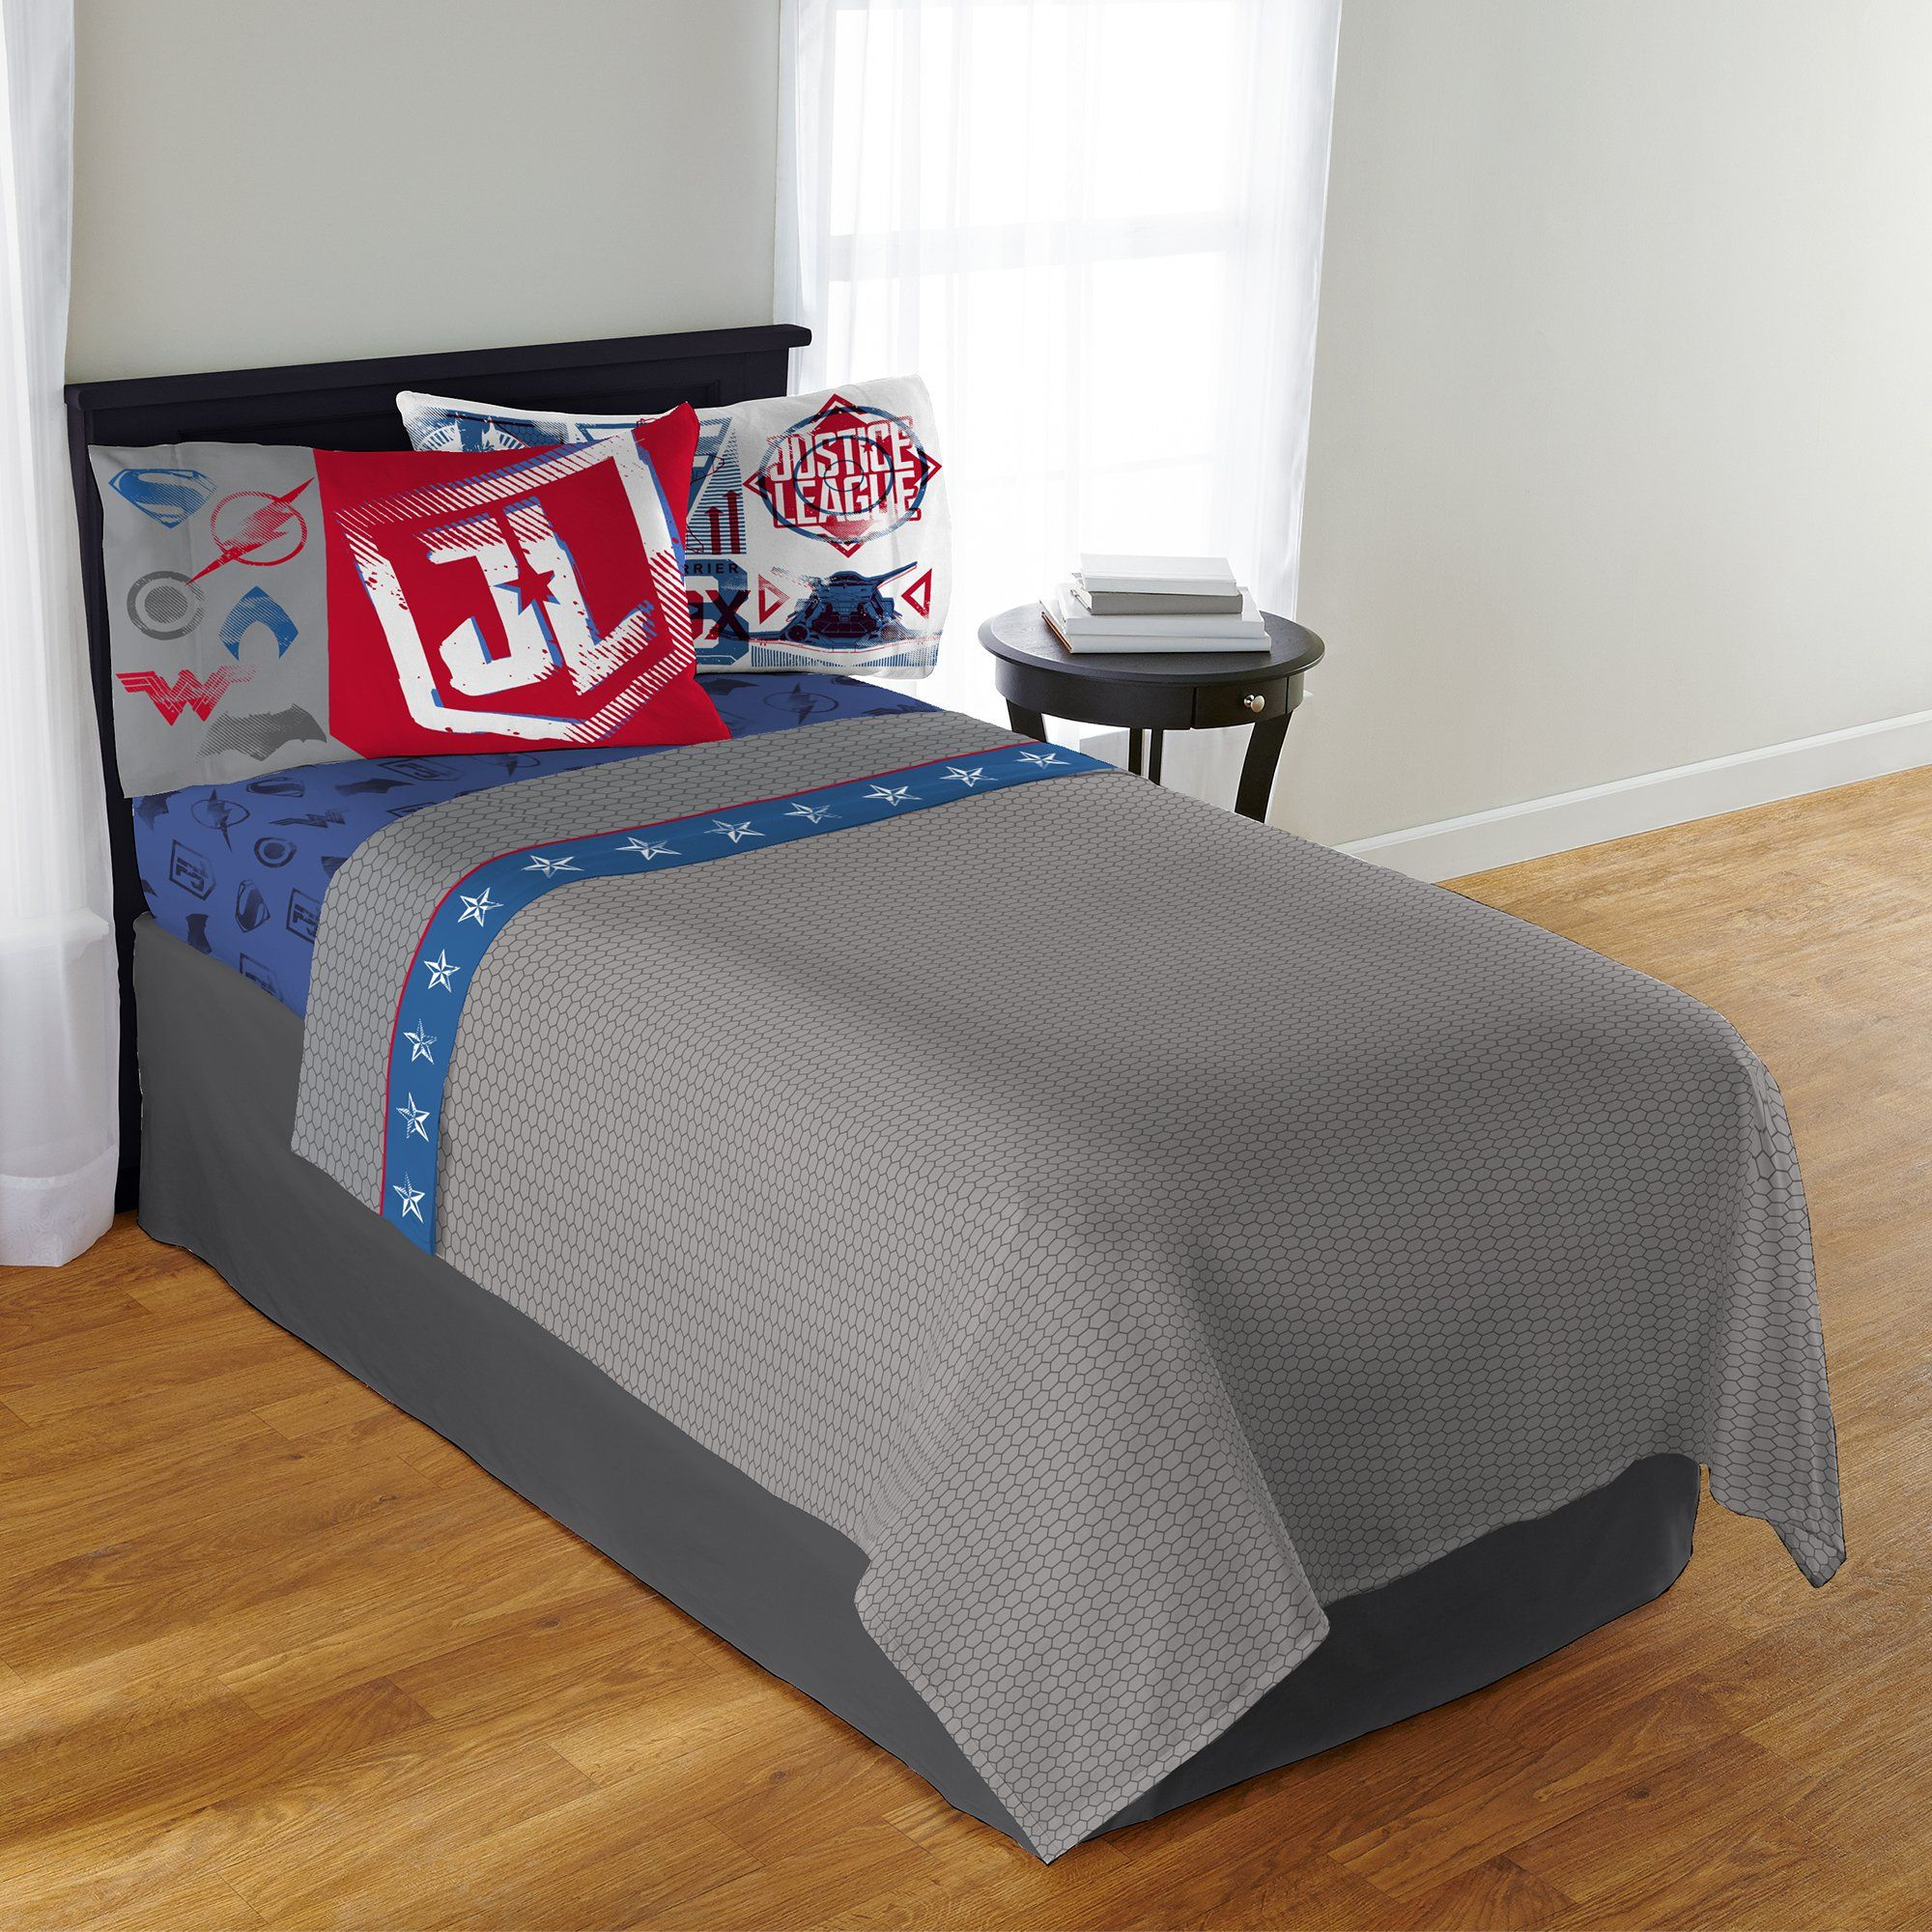 League Call For Justice Full Sheet Set 4 Piece ***